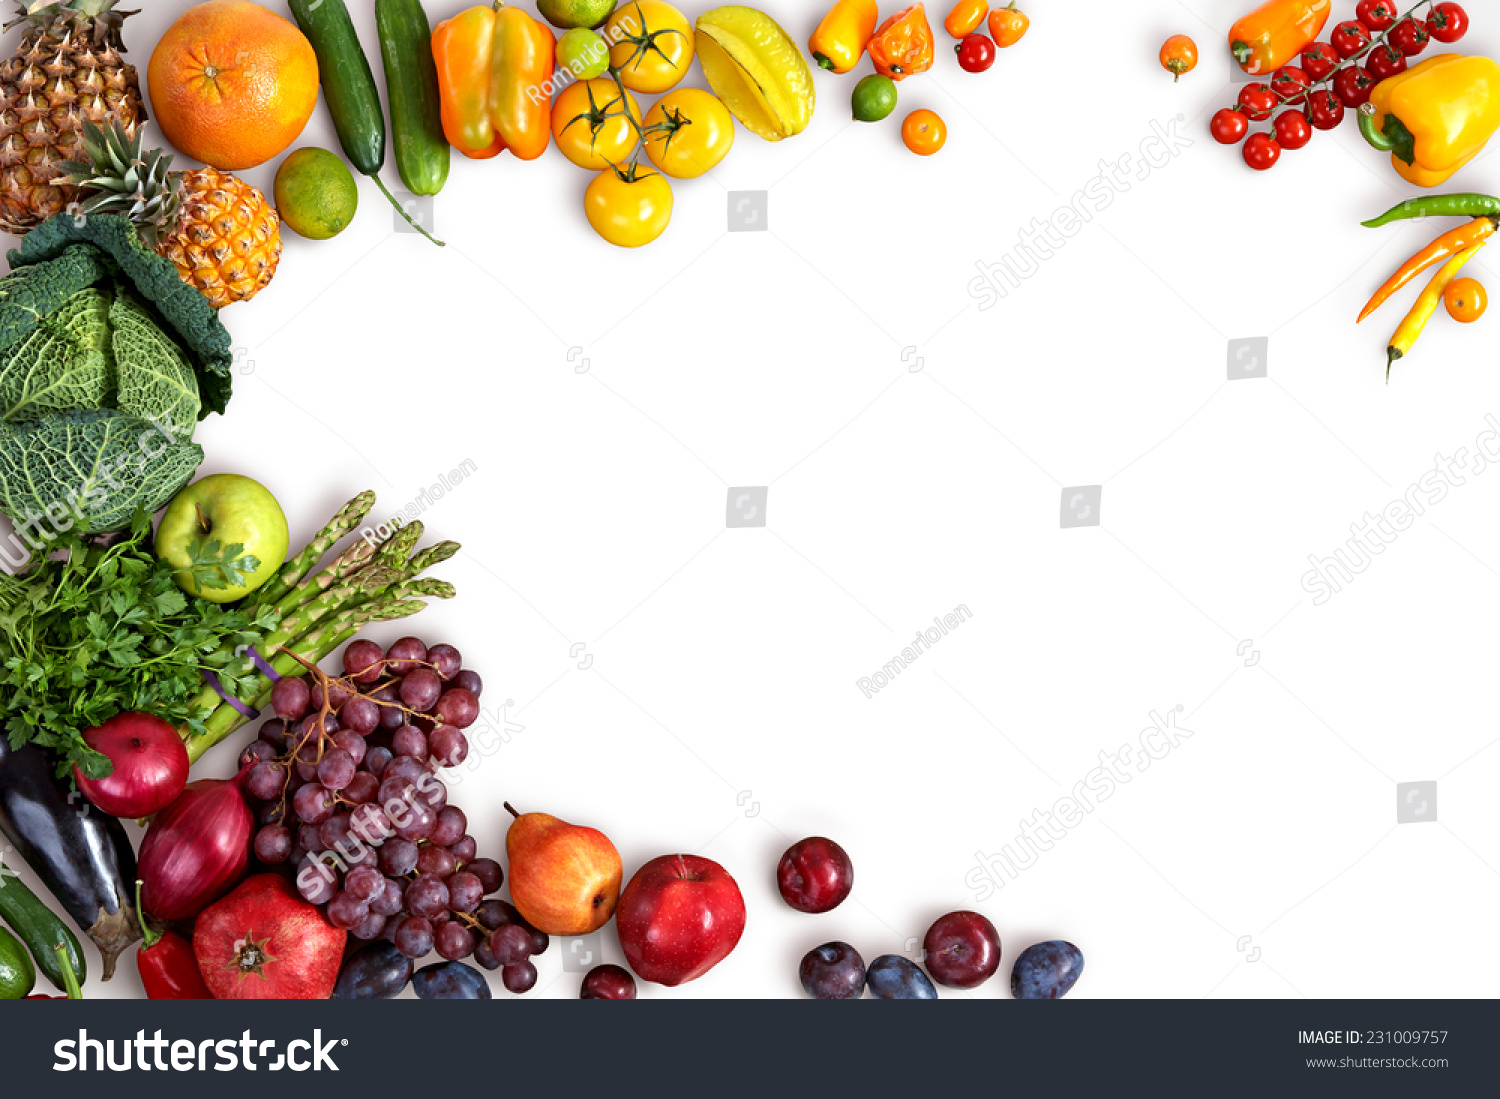 Food background studio photo of different fruits and vegetables - Healthy Eating Background Studio Photography Of Different Fruits And Vegetables On White Backdrop